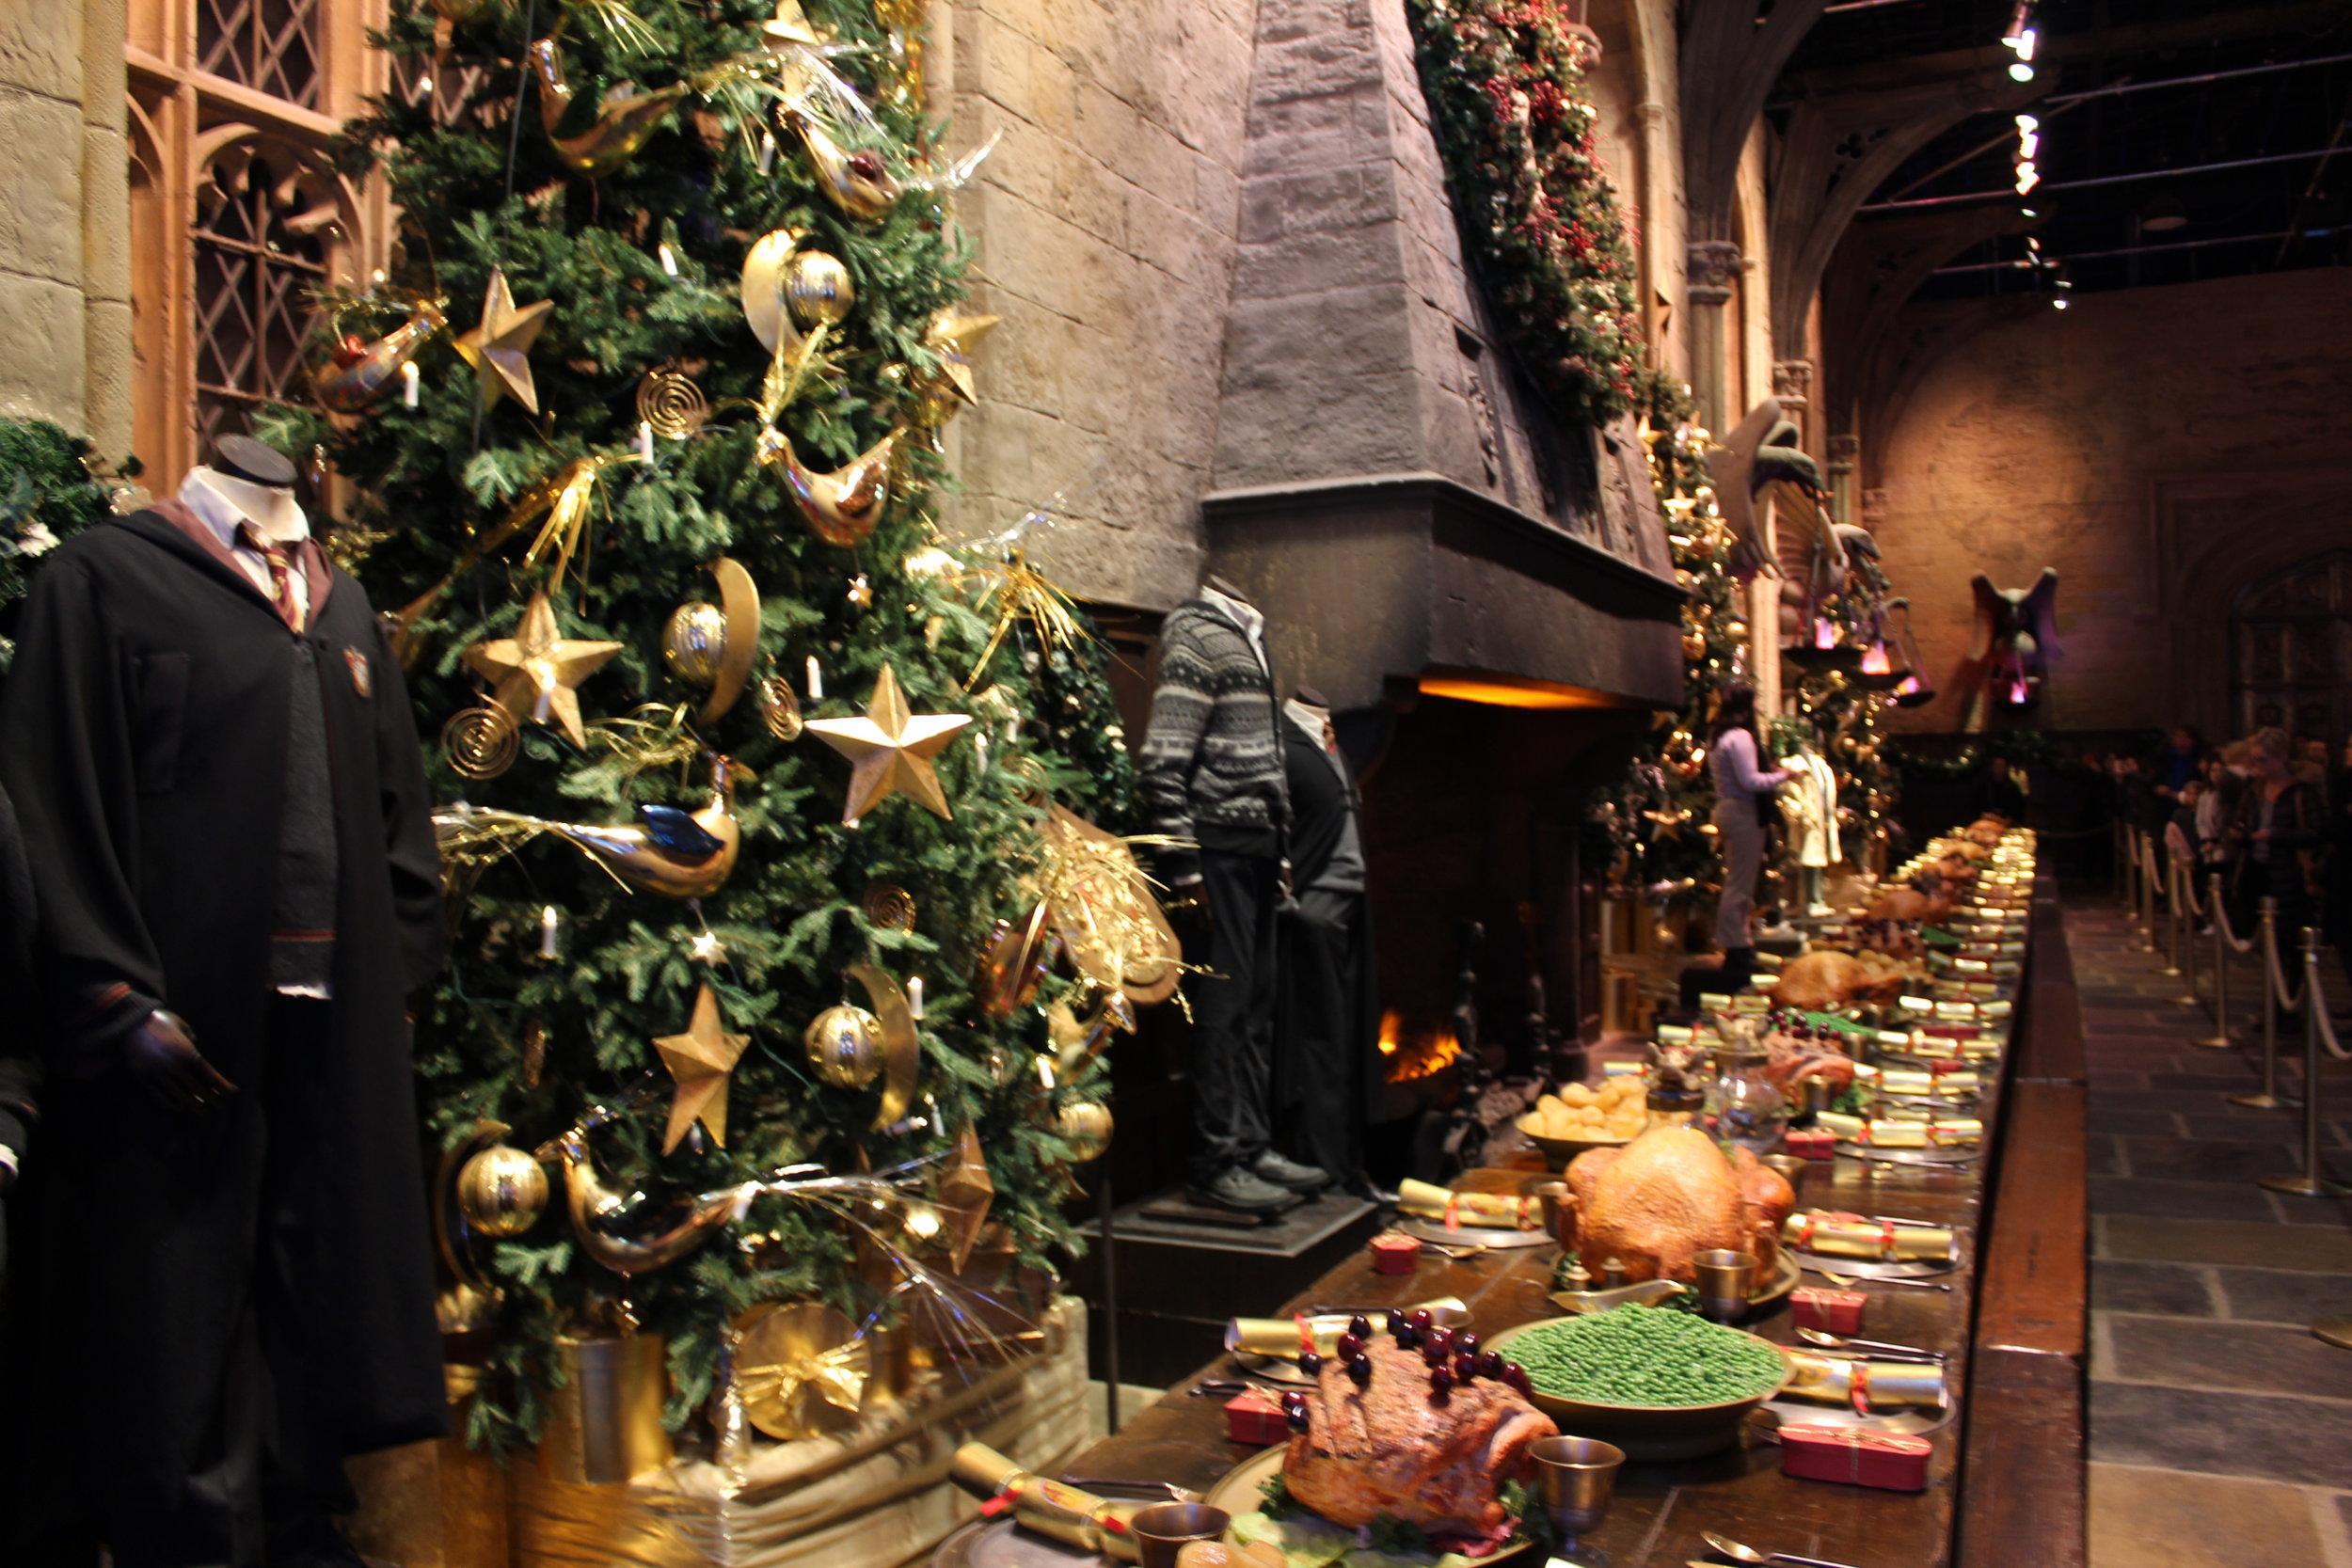 Roast of your dreams - thank you Harry Potter for your magical dinner!